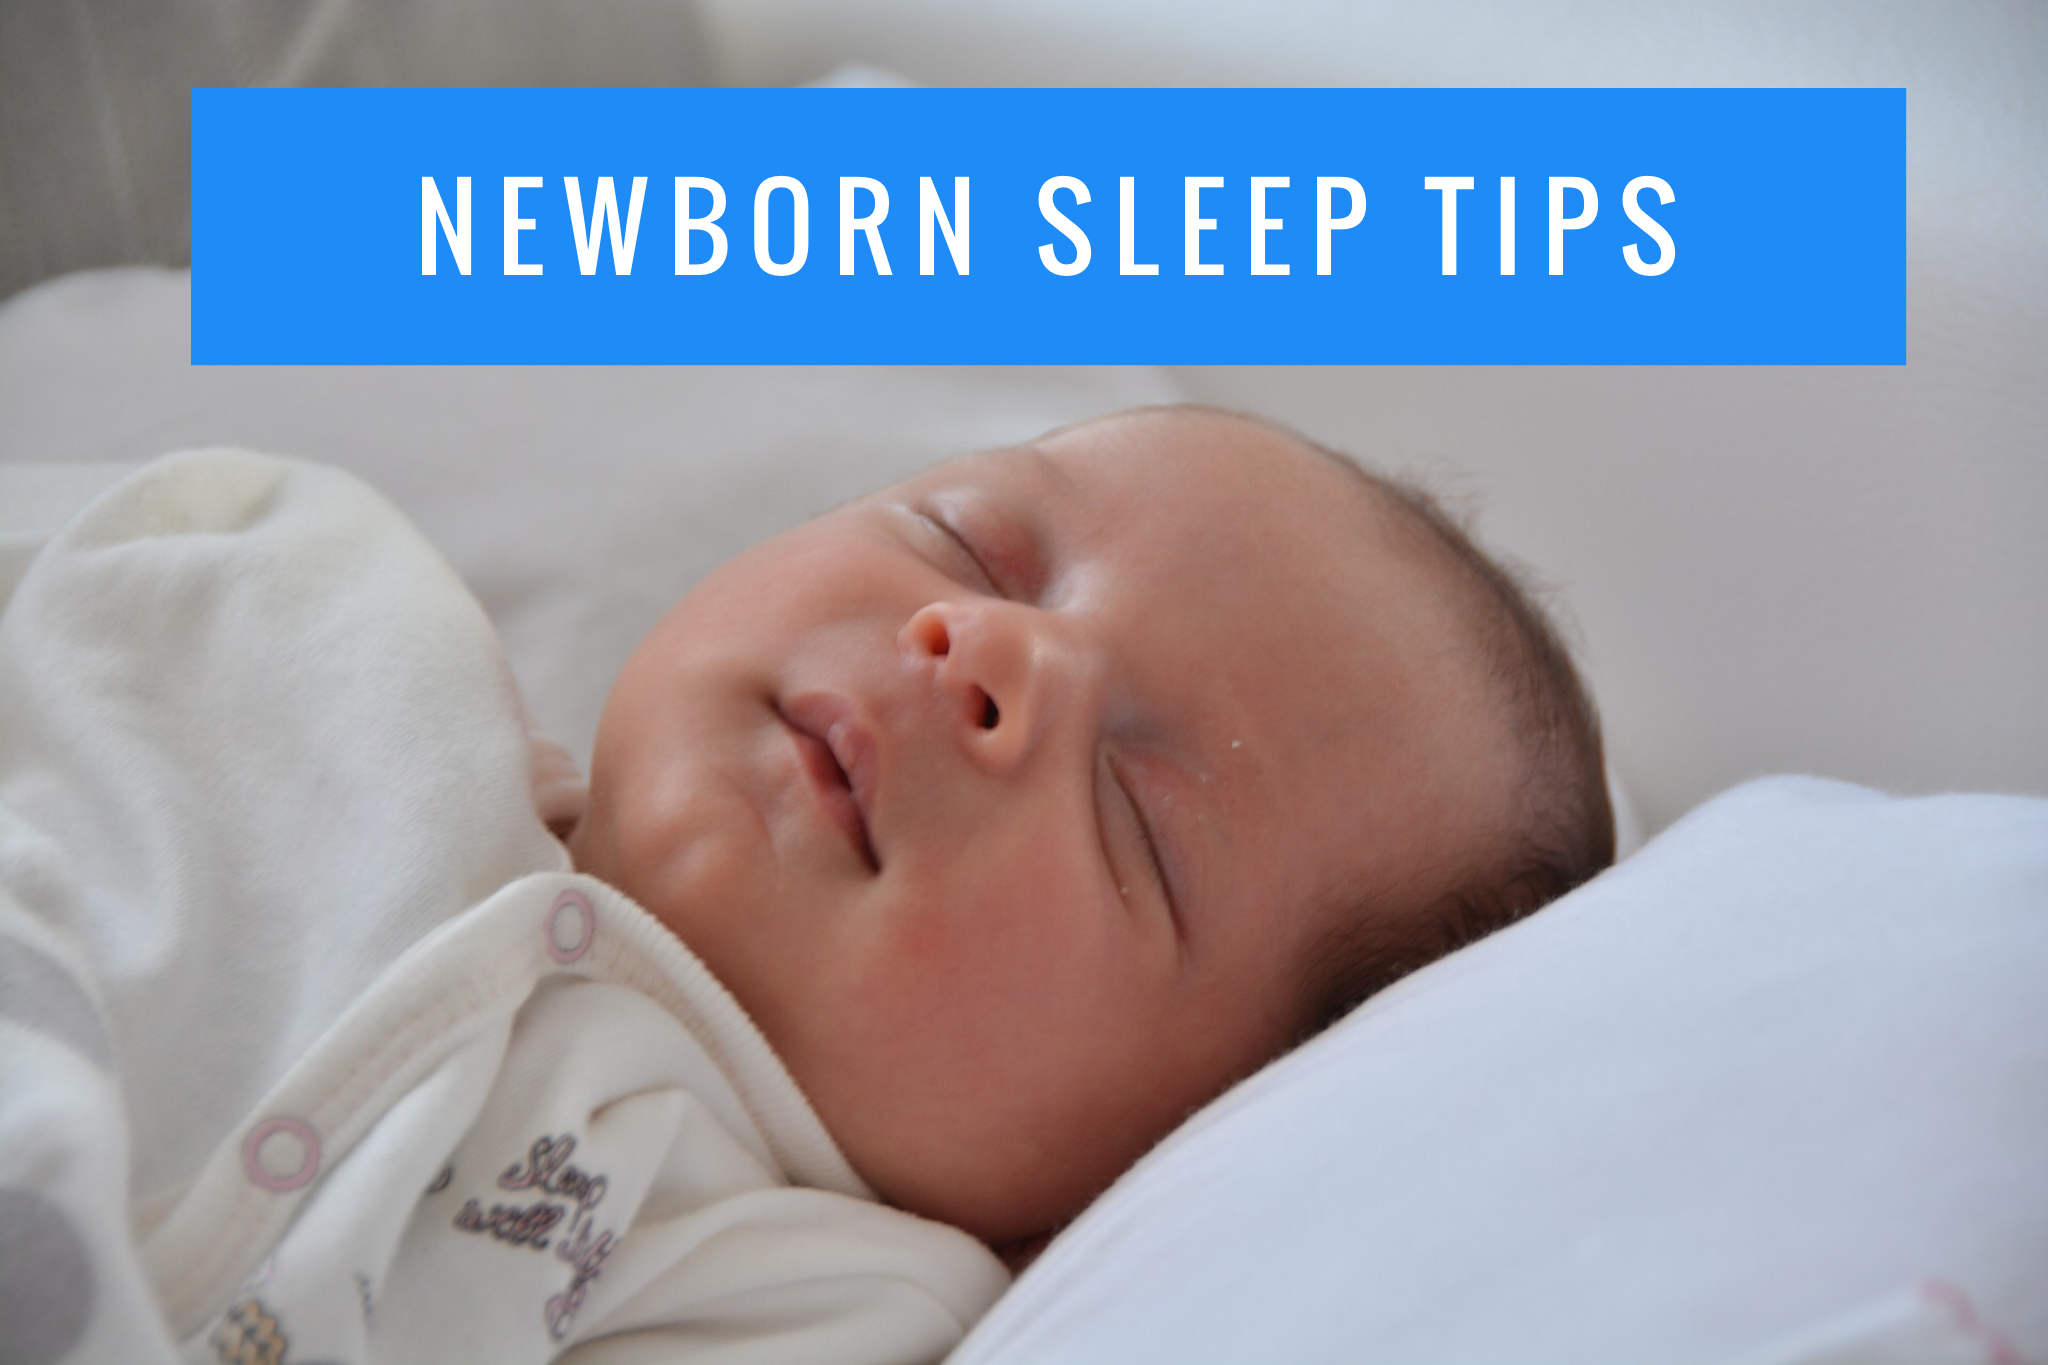 Newborn Sleep Tips.png